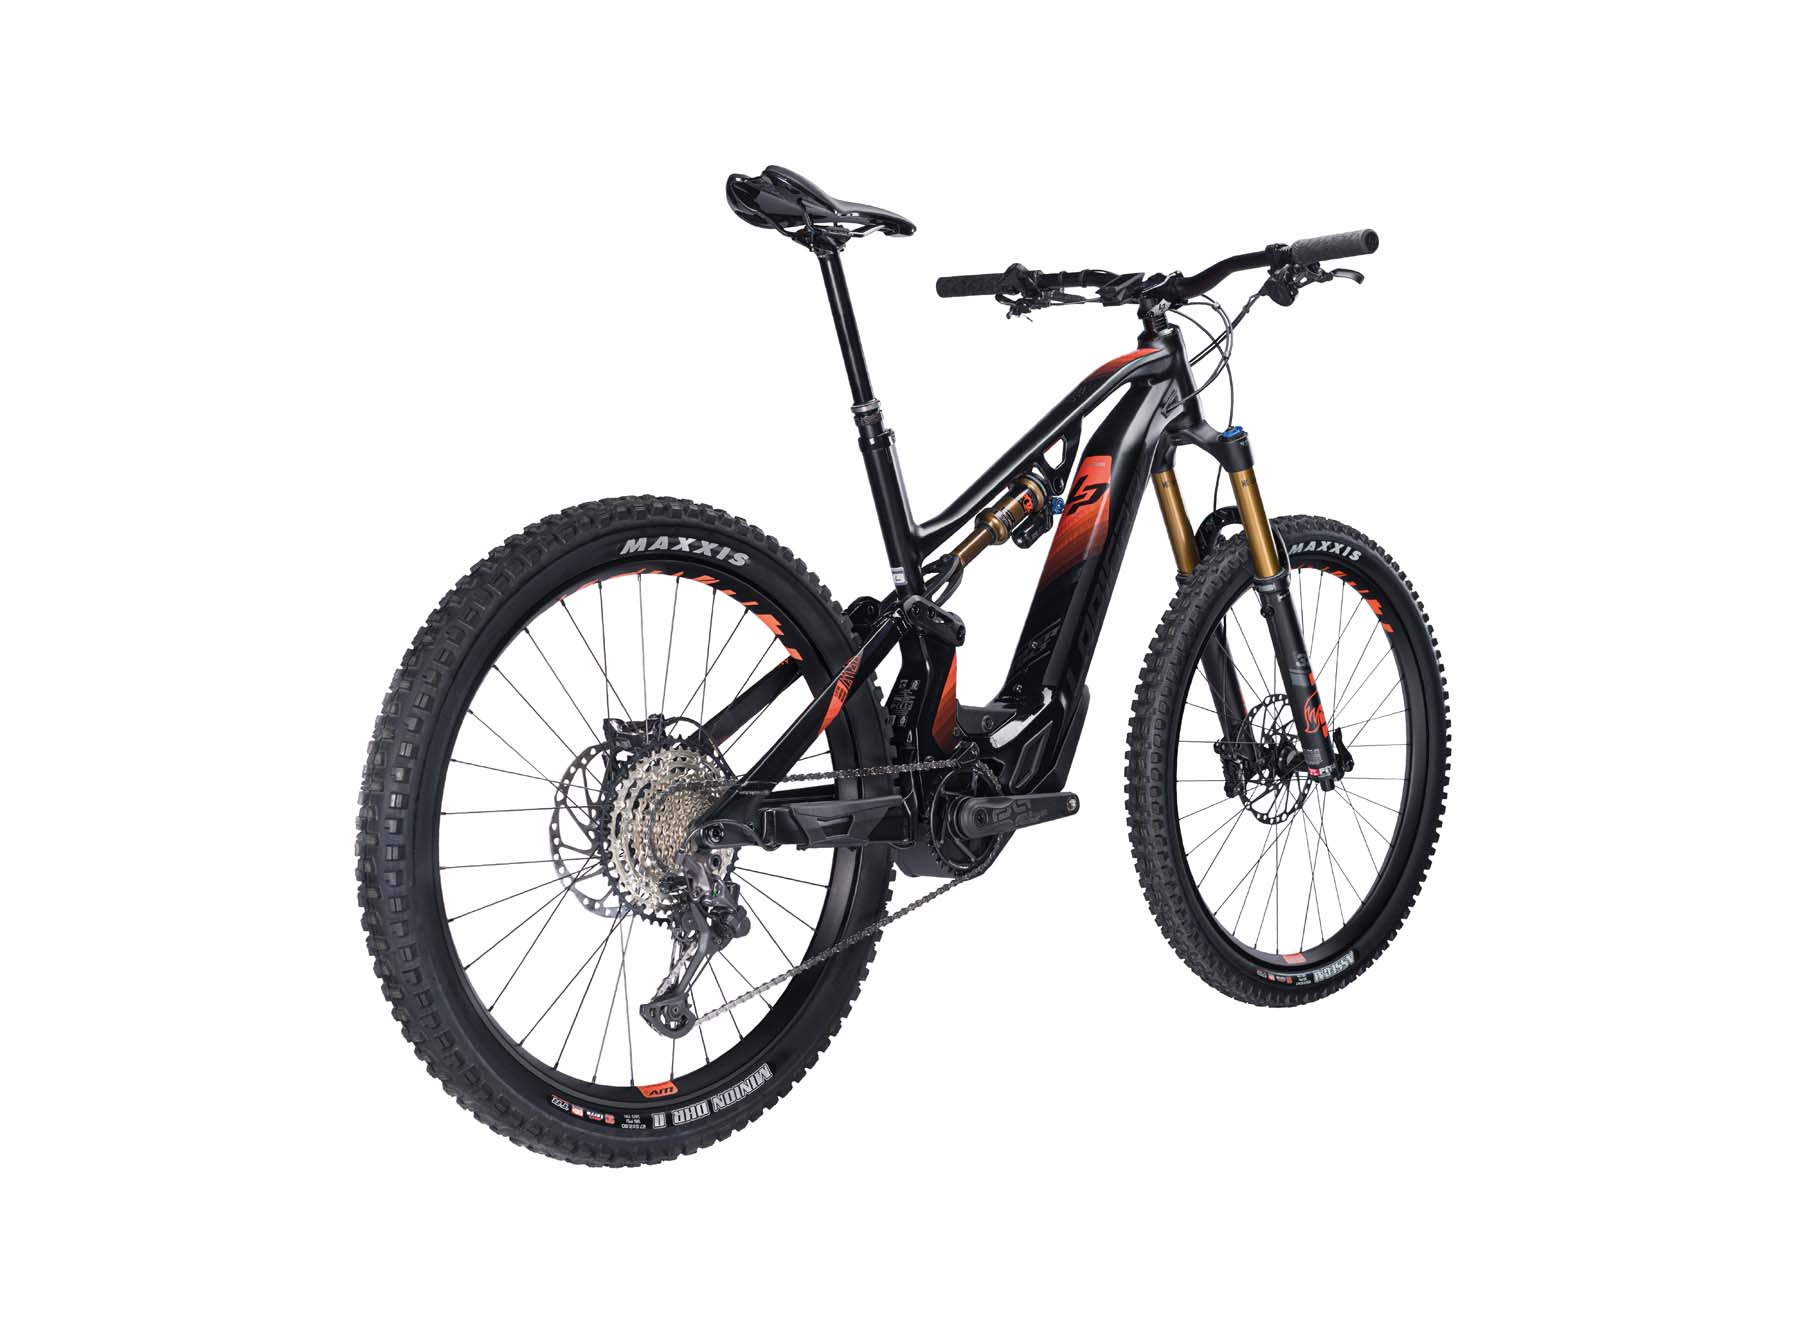 Lapierre Overvolt AM 8.6 2021 MTB Eléctrica All-Mountain 3